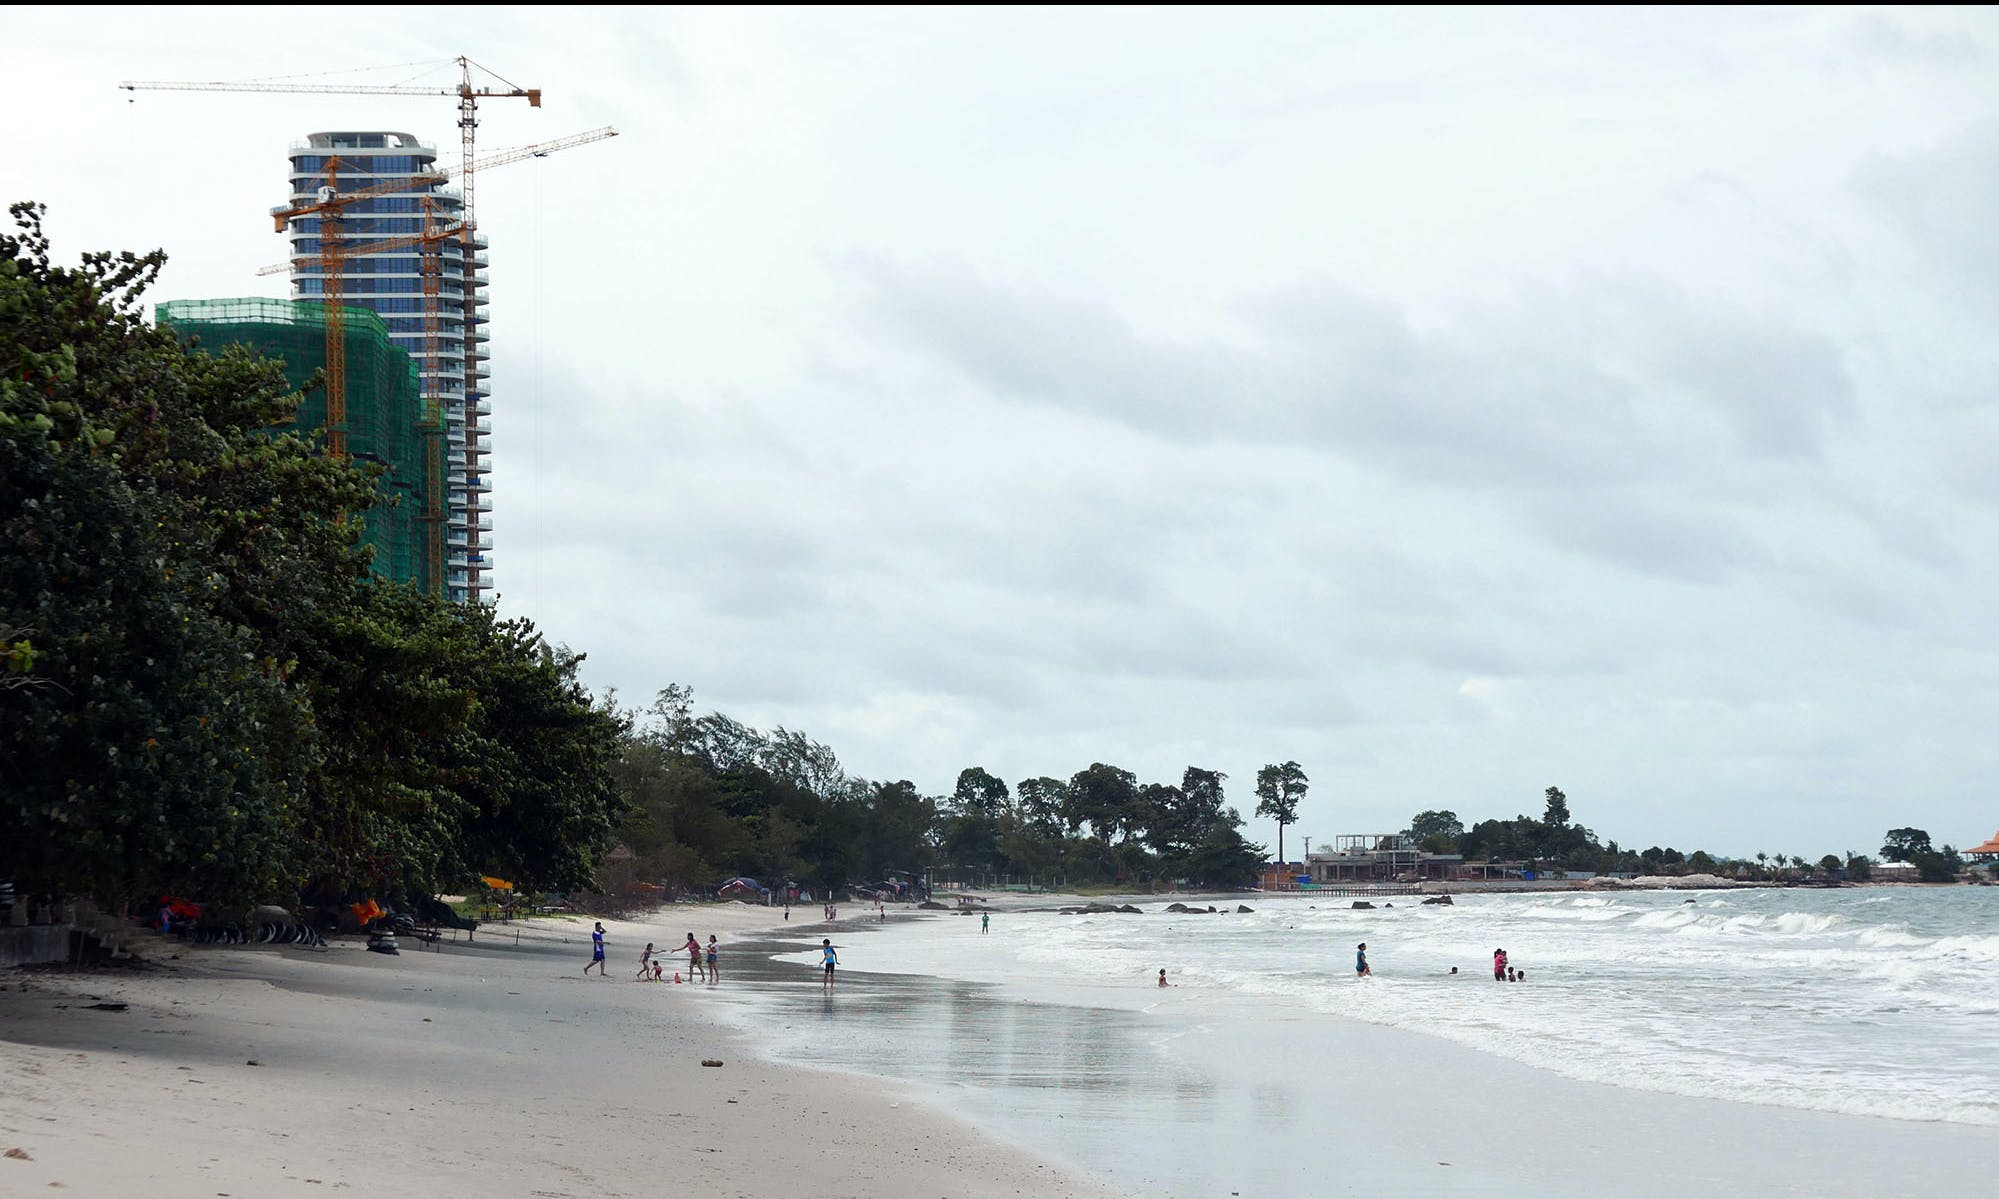 PHOTO STORY: Sihanoukville, China's New Colony